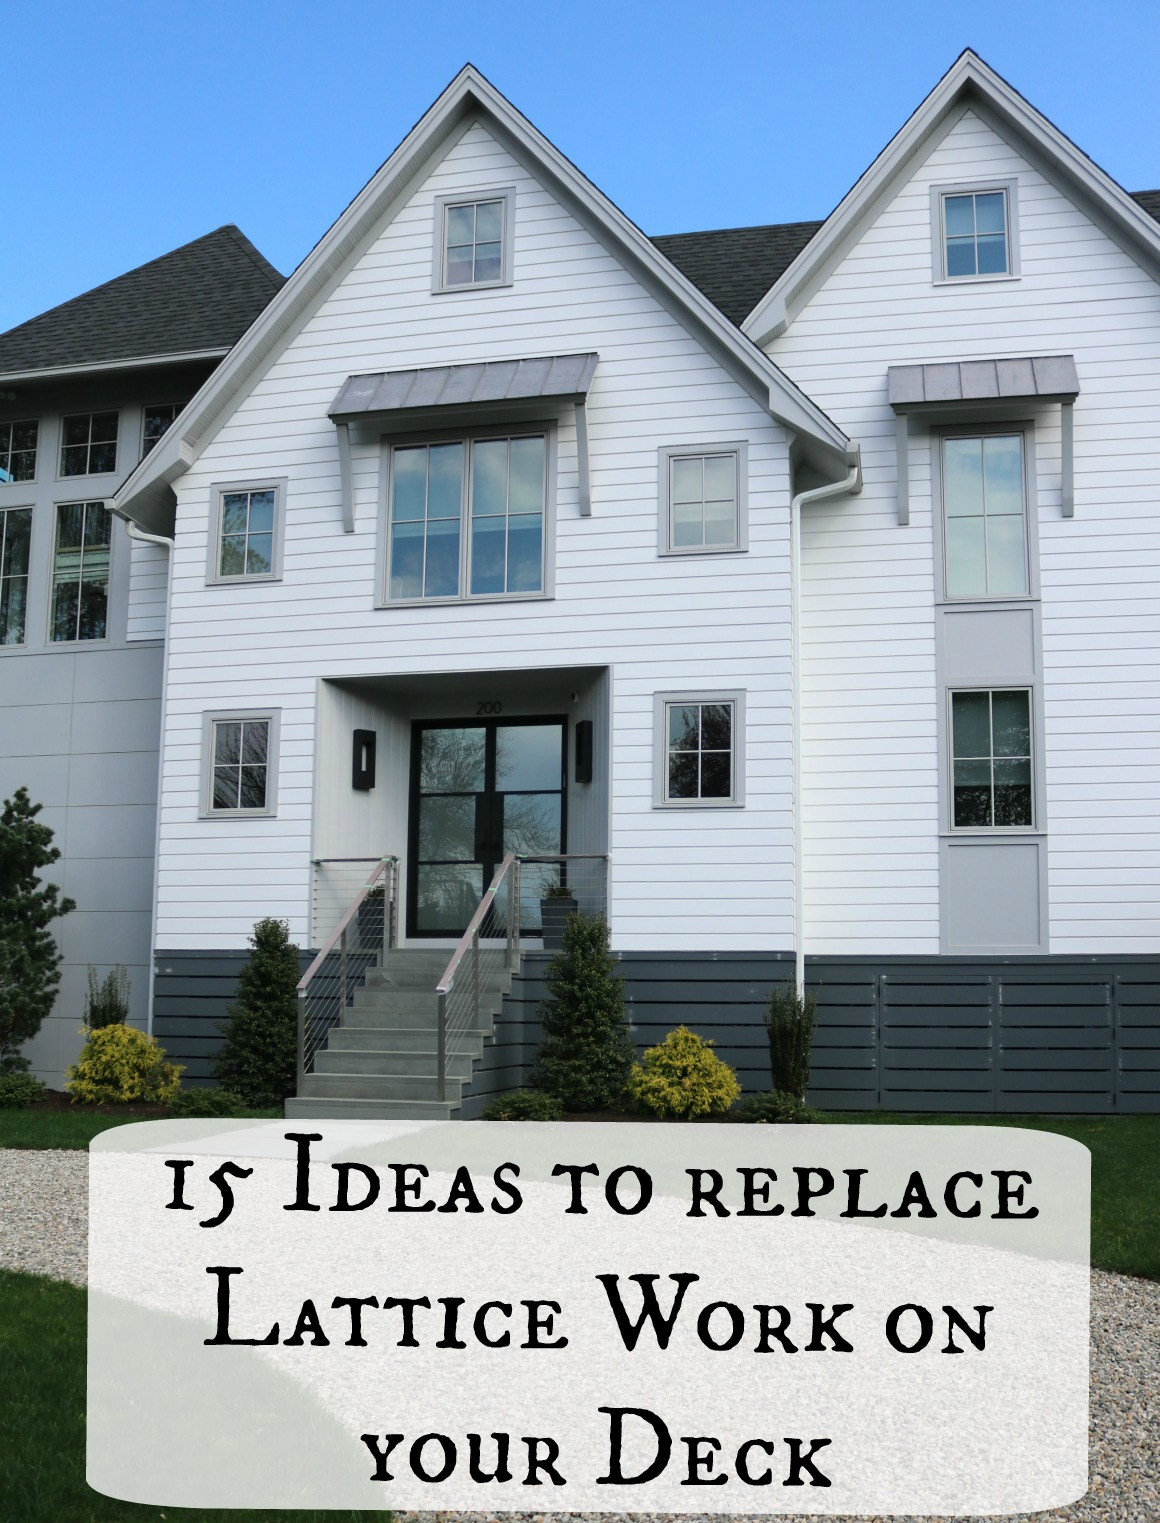 15 Ideas to replace Lattice on your Deck